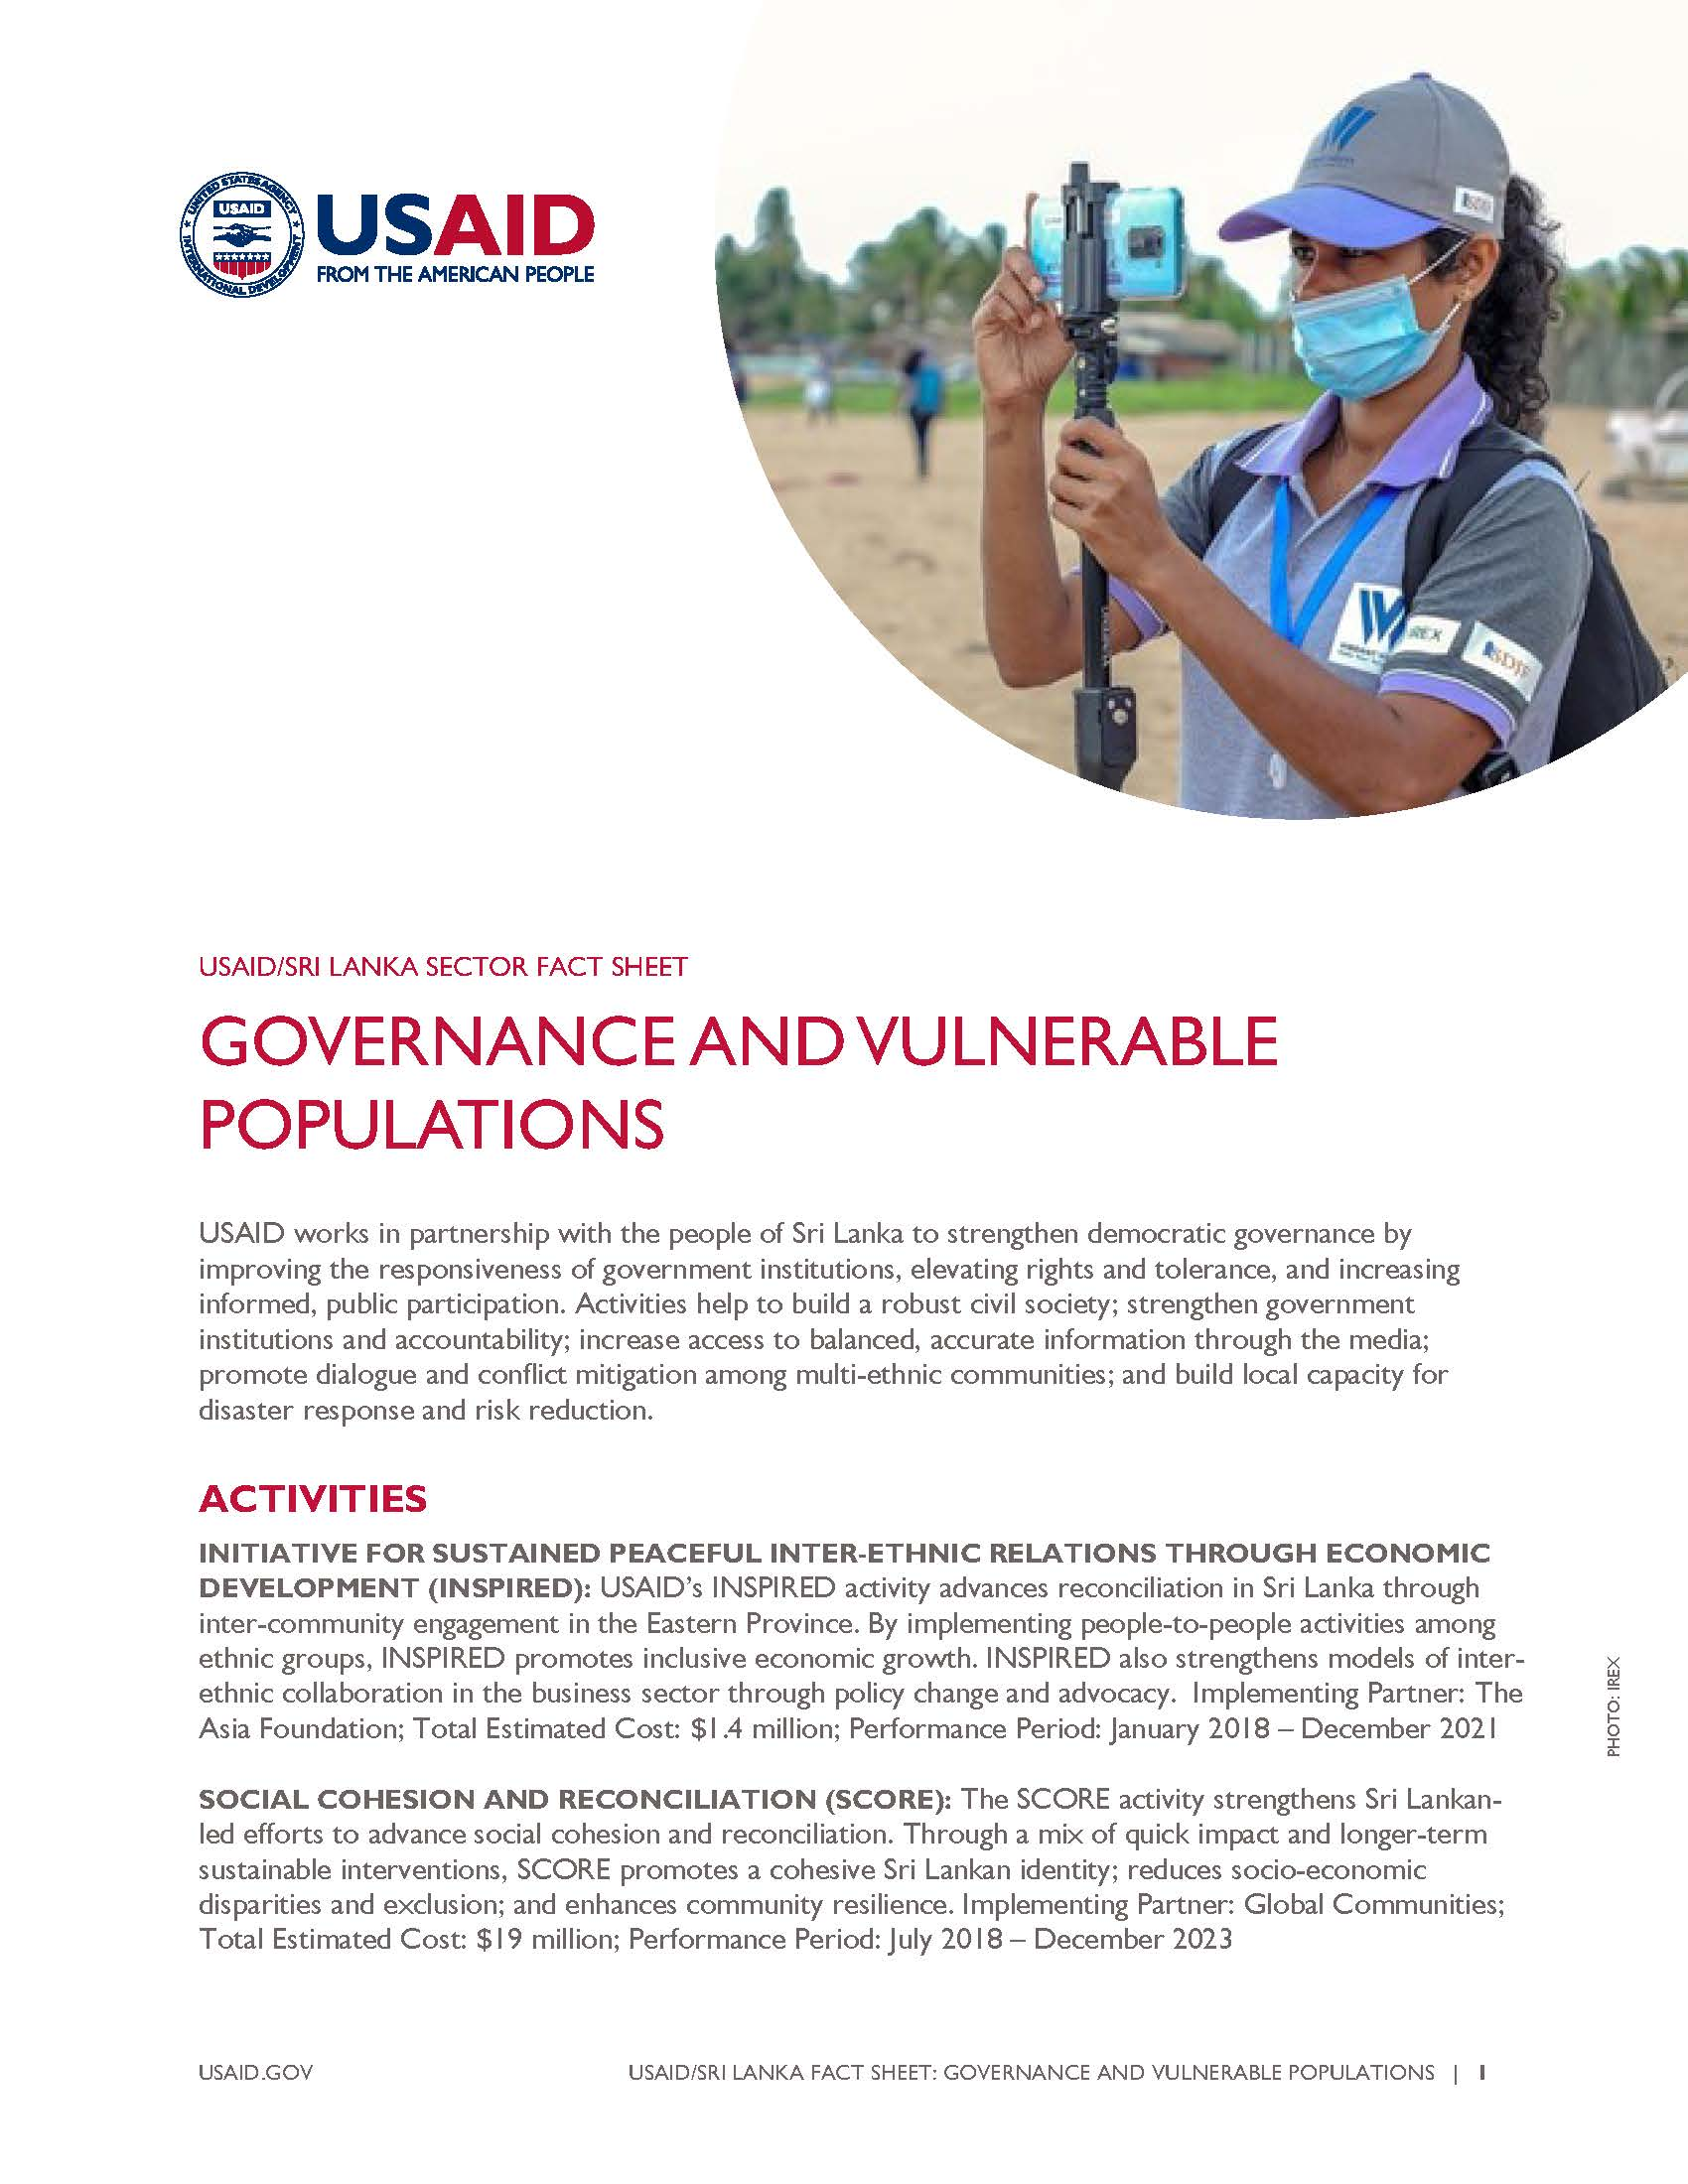 USAID/Sri Lanka Fact Sheet: Governance and Vulnerable Populations